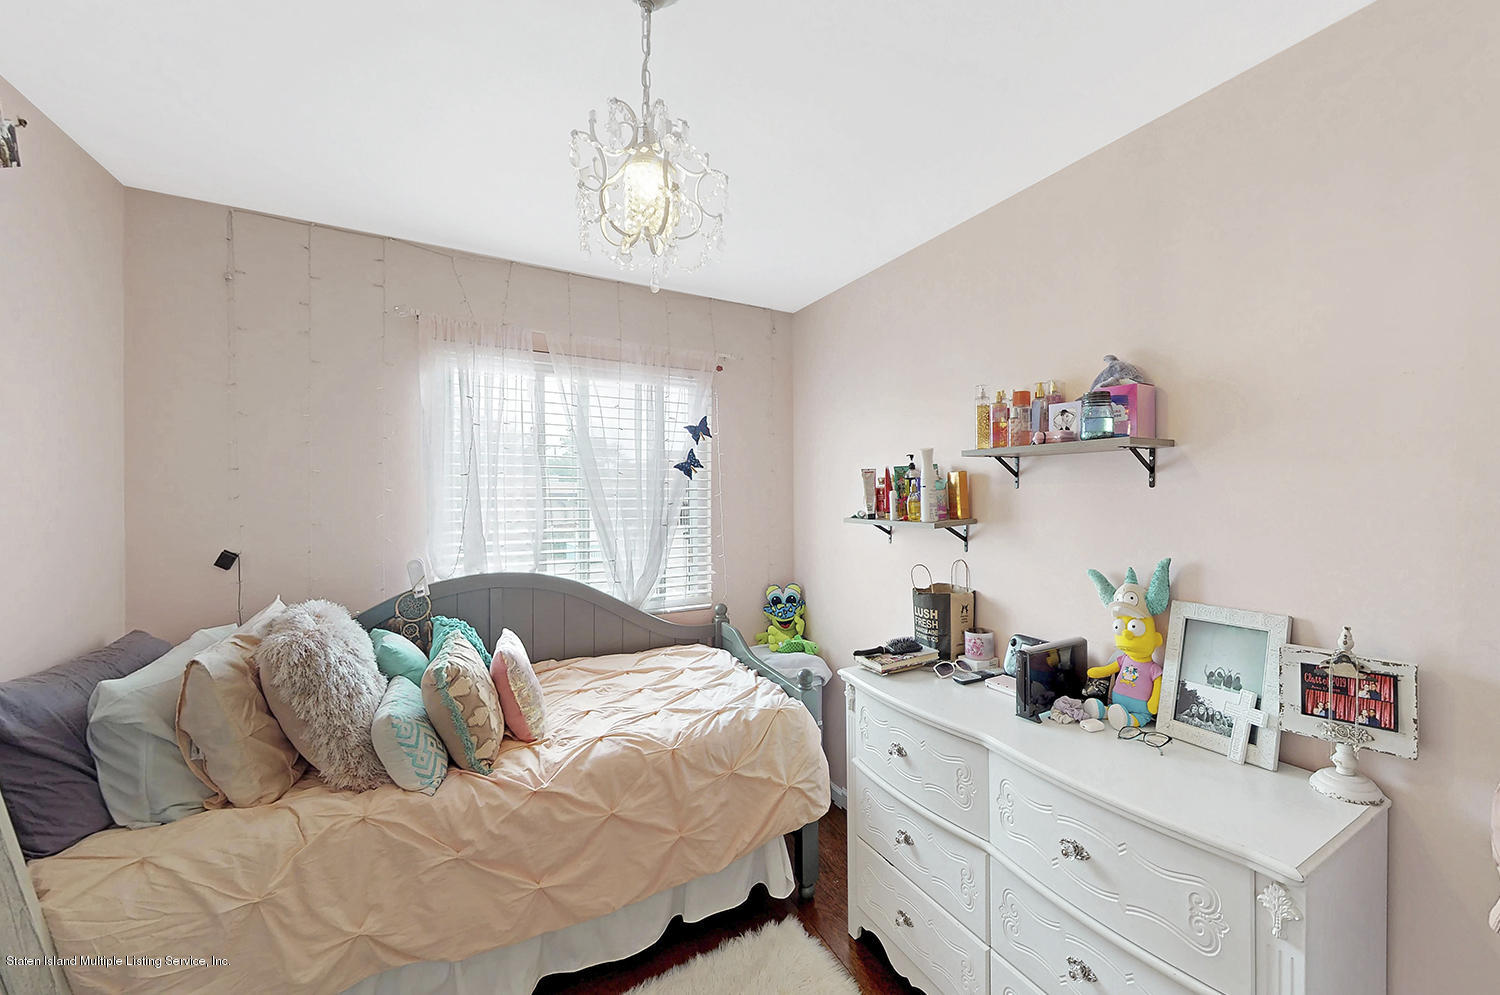 Single Family - Attached 10 Greentree Lane A  Staten Island, NY 10314, MLS-1131041-3